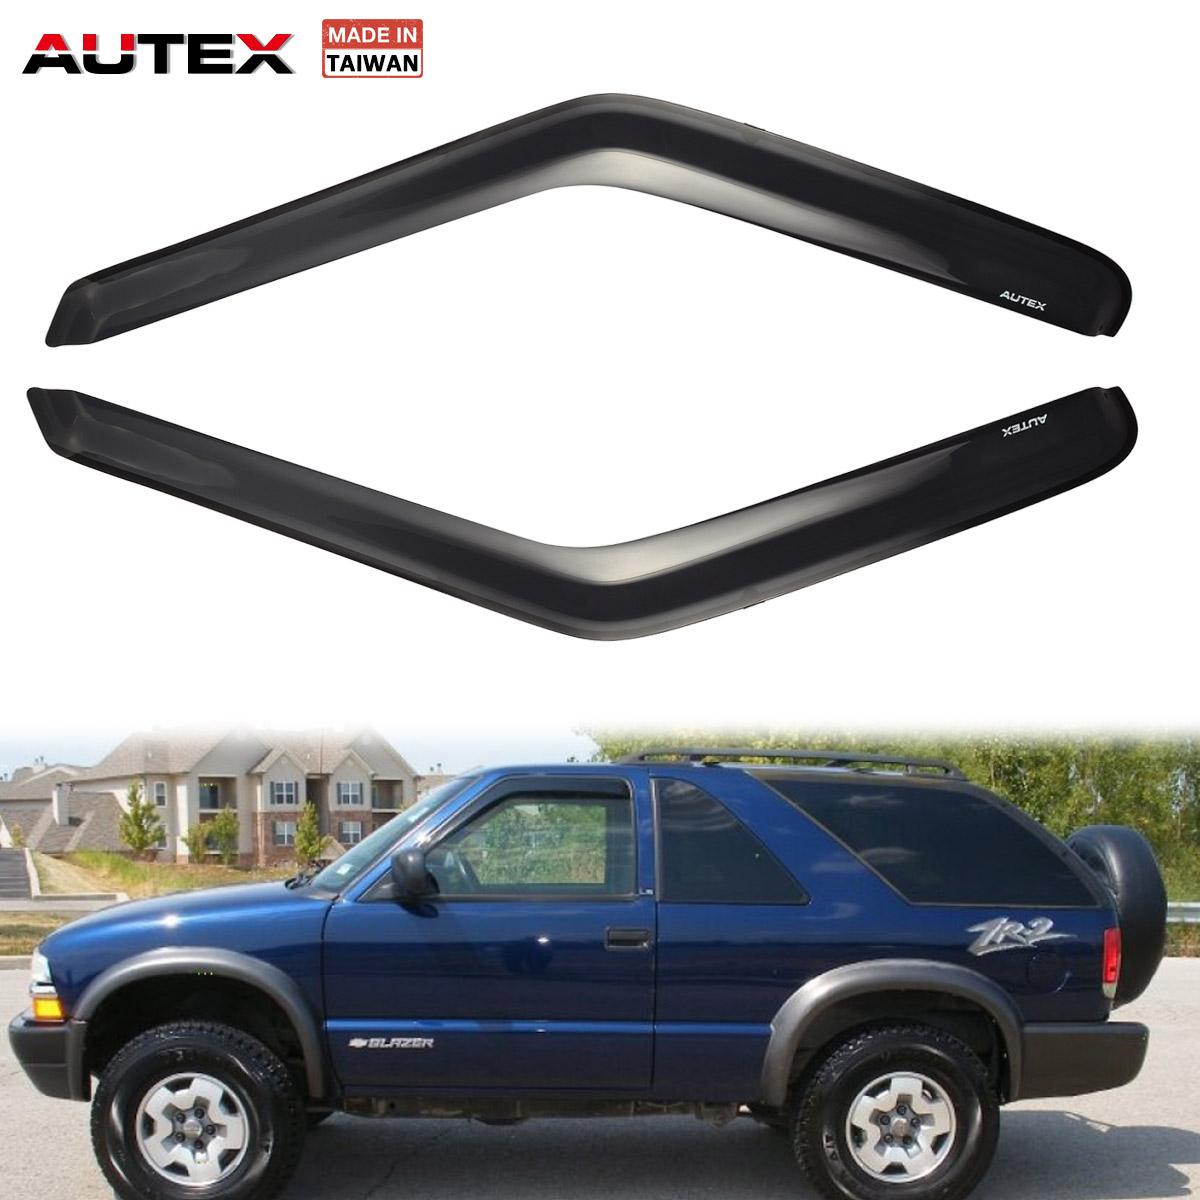 hight resolution of details about 2x original acrylic front window visors for 95 05 chevy blazer chevy s10 pickup